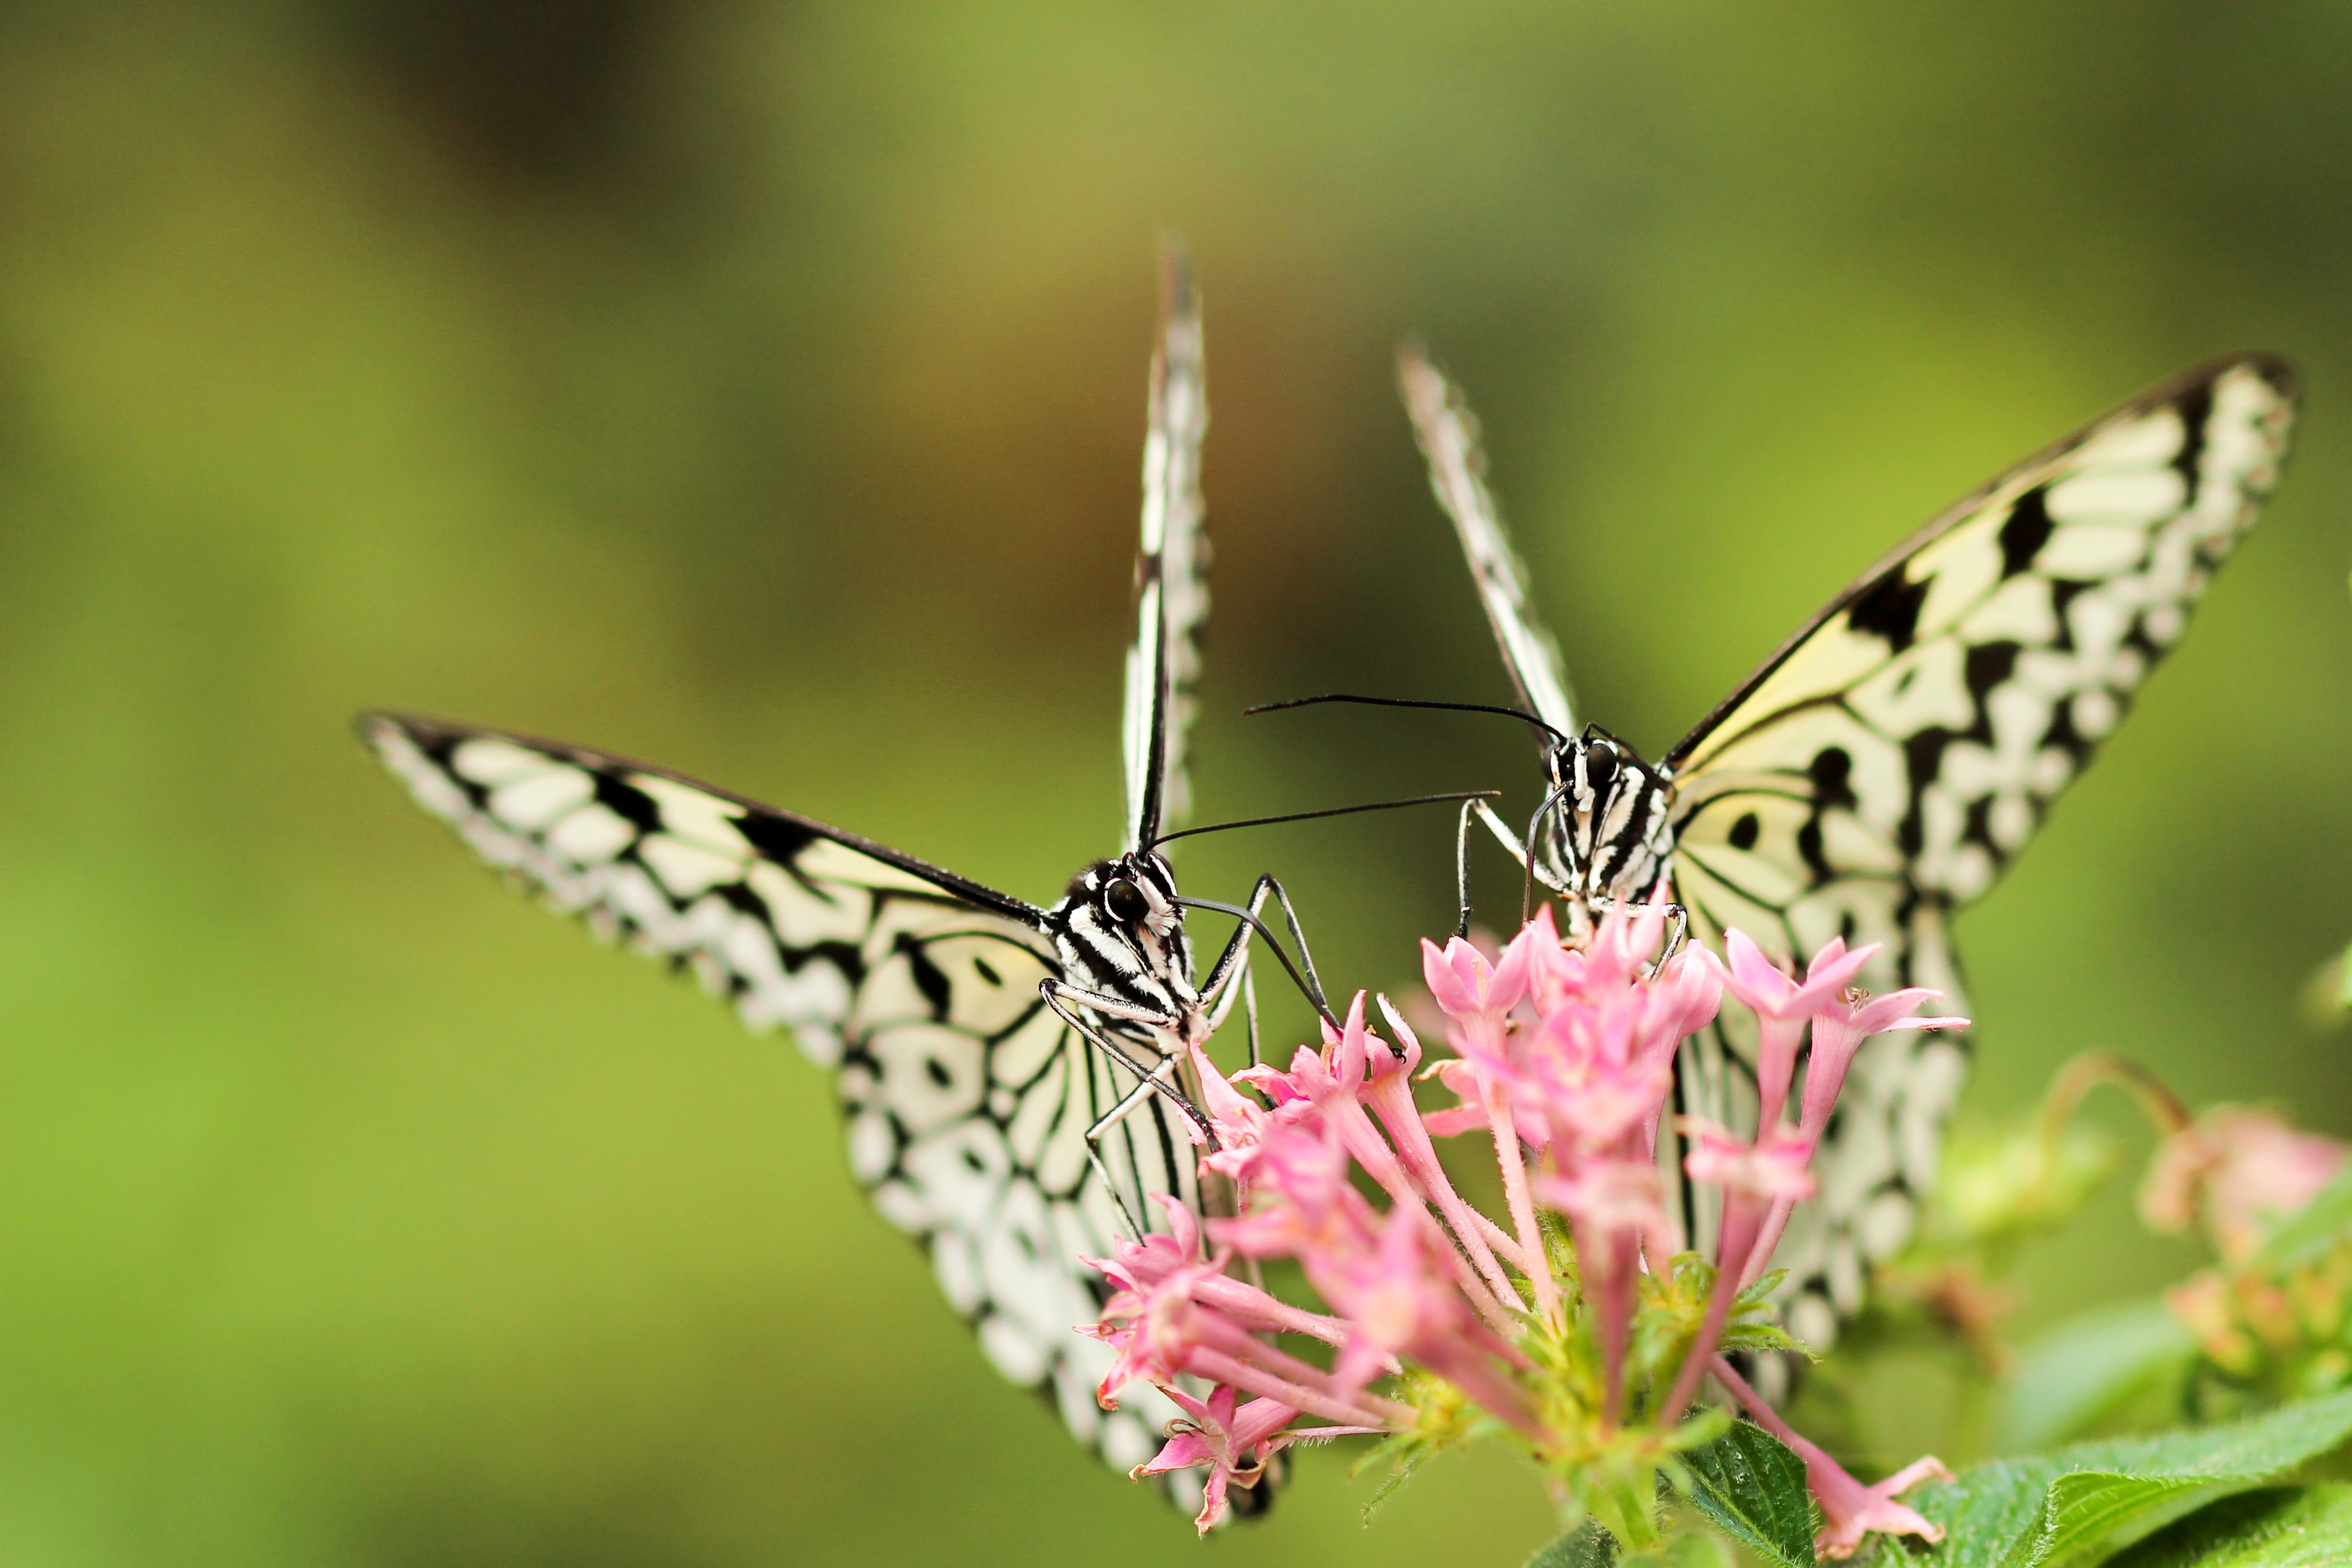 Two black-and-white butterflies on pink flowers